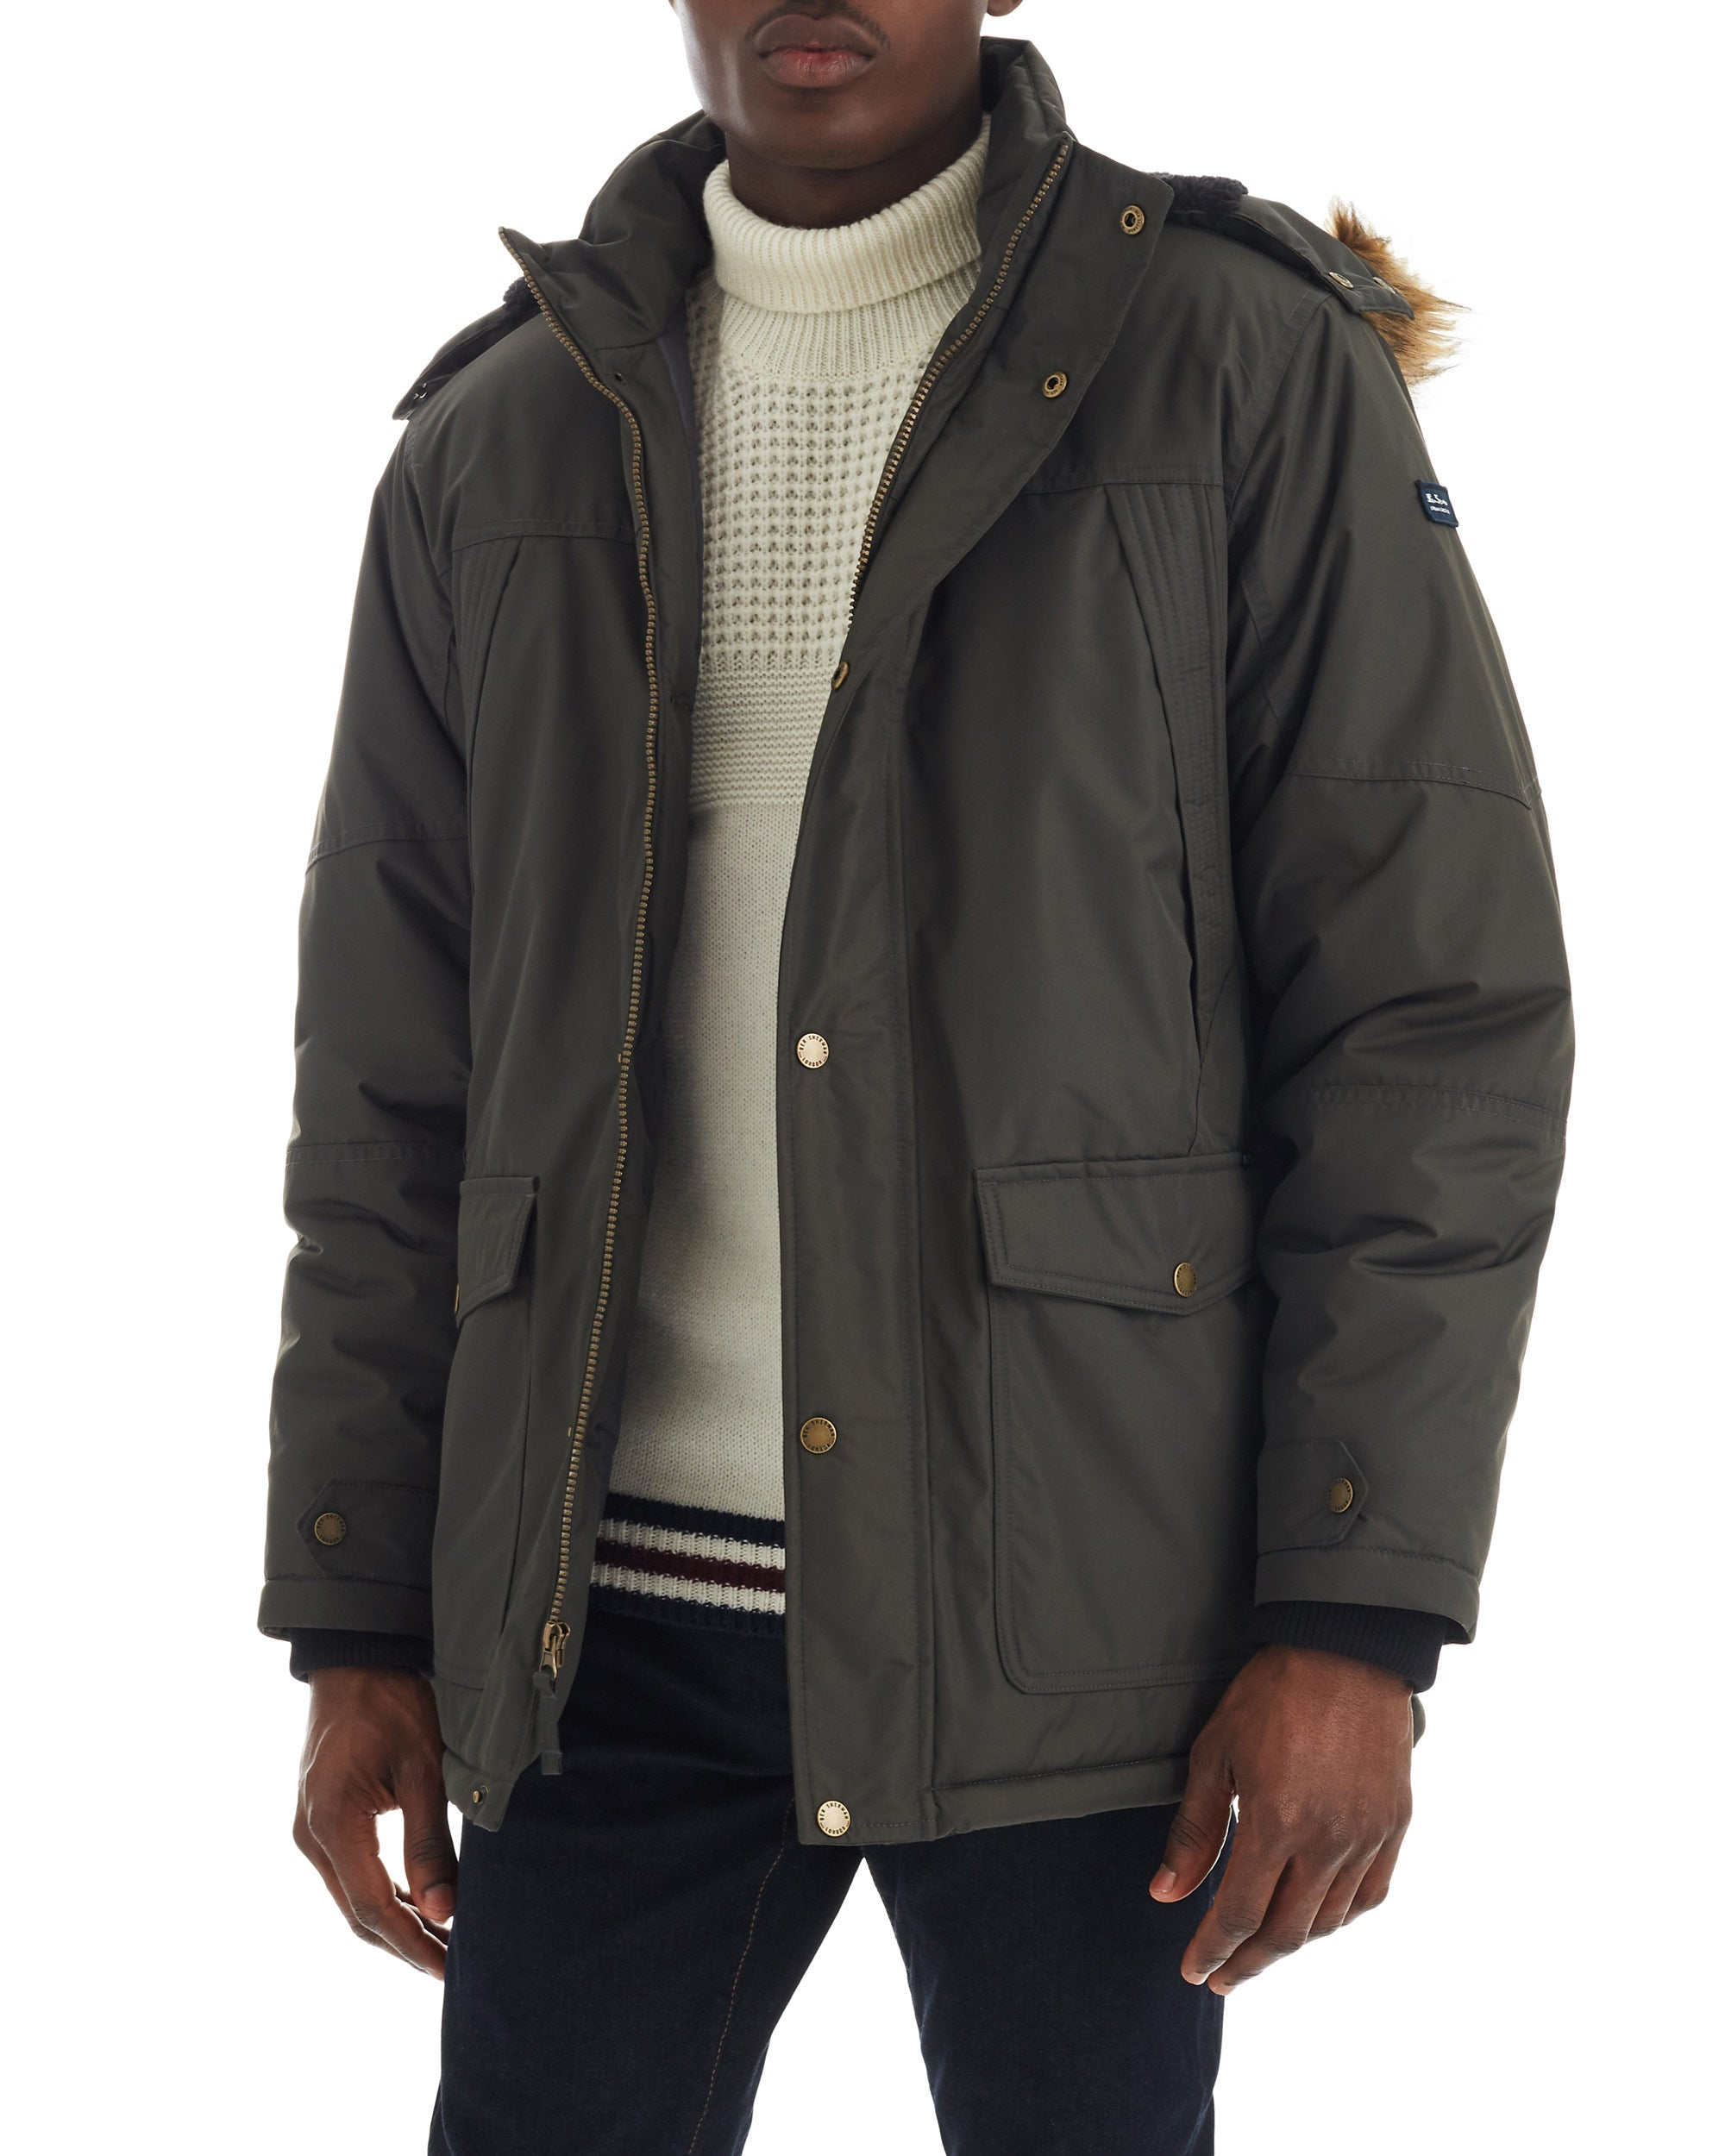 Men's Heavy Snorkel Coat with Faux Fur Hood - Olive